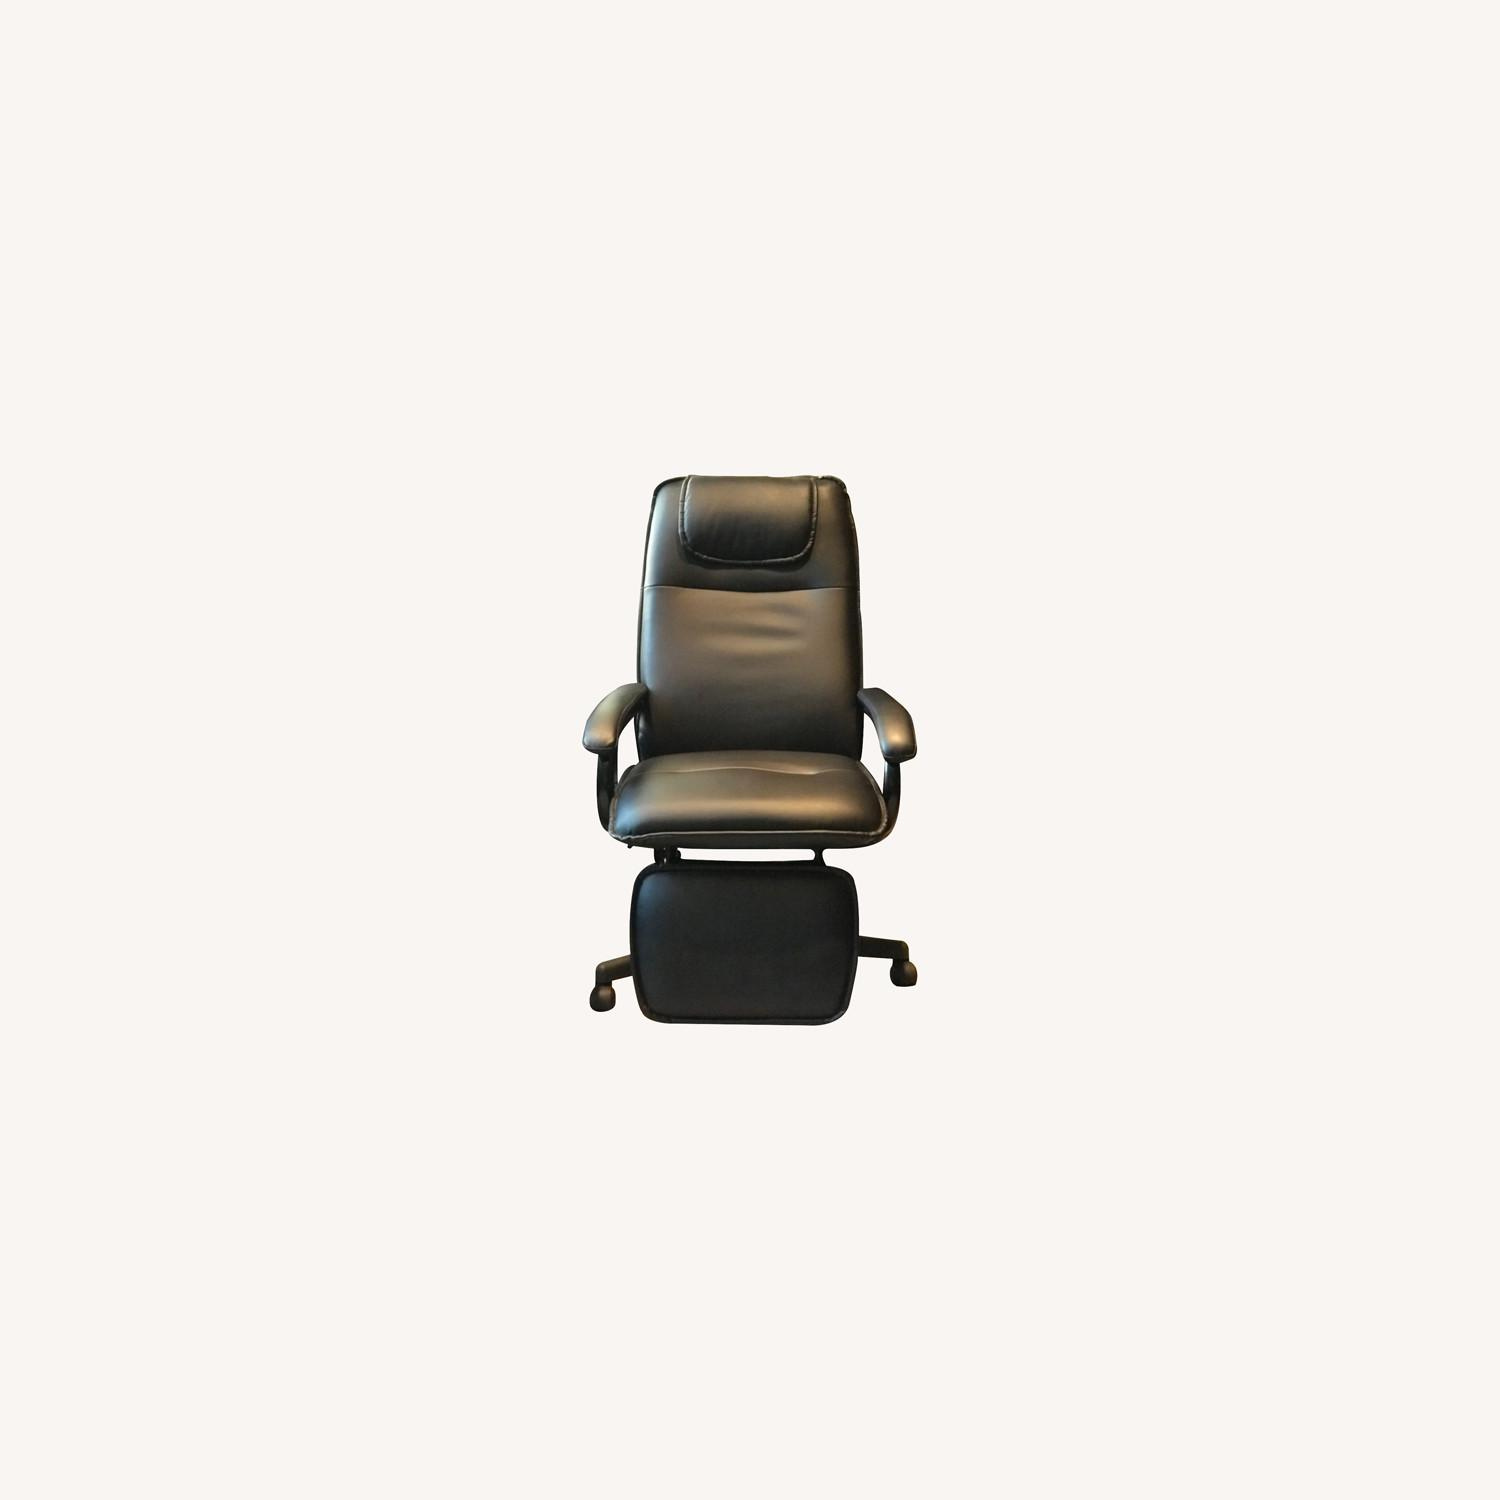 Reclining Swivel Chairs with Foot Rests - image-0